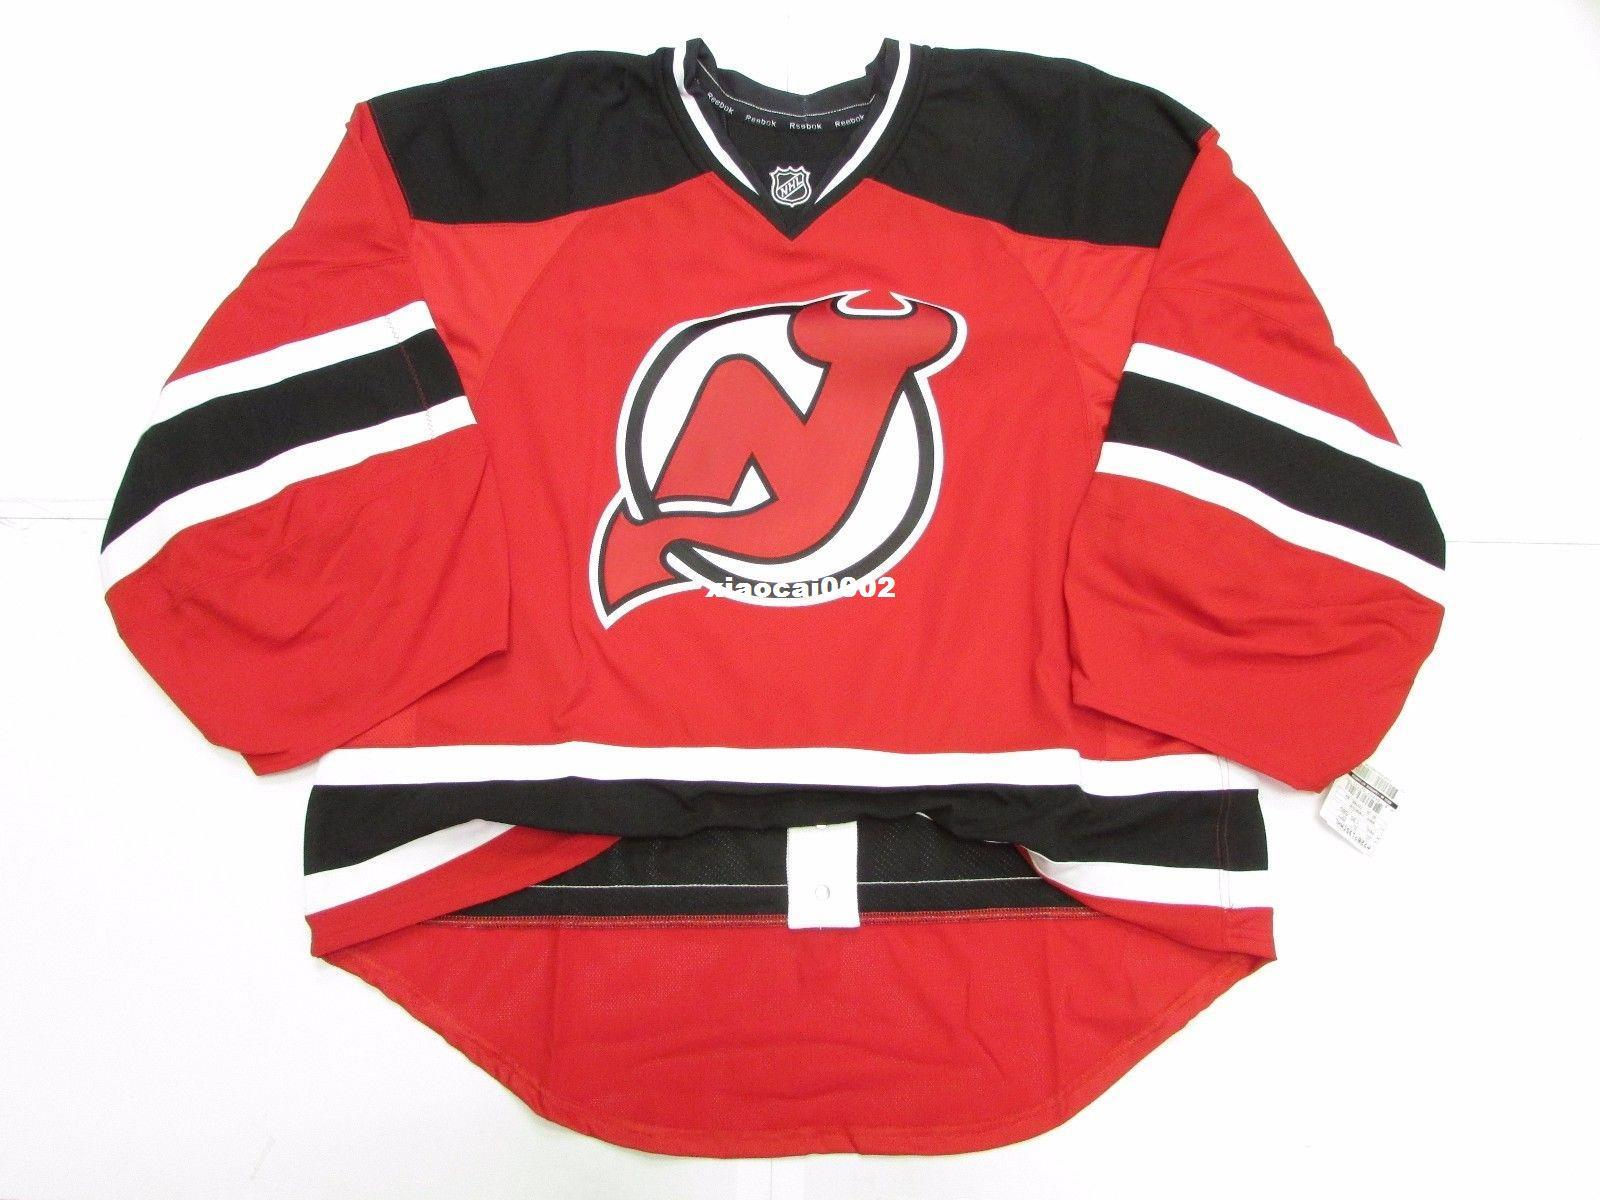 the best attitude 1baab 3f7a0 Cheap Custom NEW JERSEY DEVILS HOME TEAM ISSUED EDGE JERSEY GOALIE CUT 60  Mens Stitched Personalized hockey Jerseys